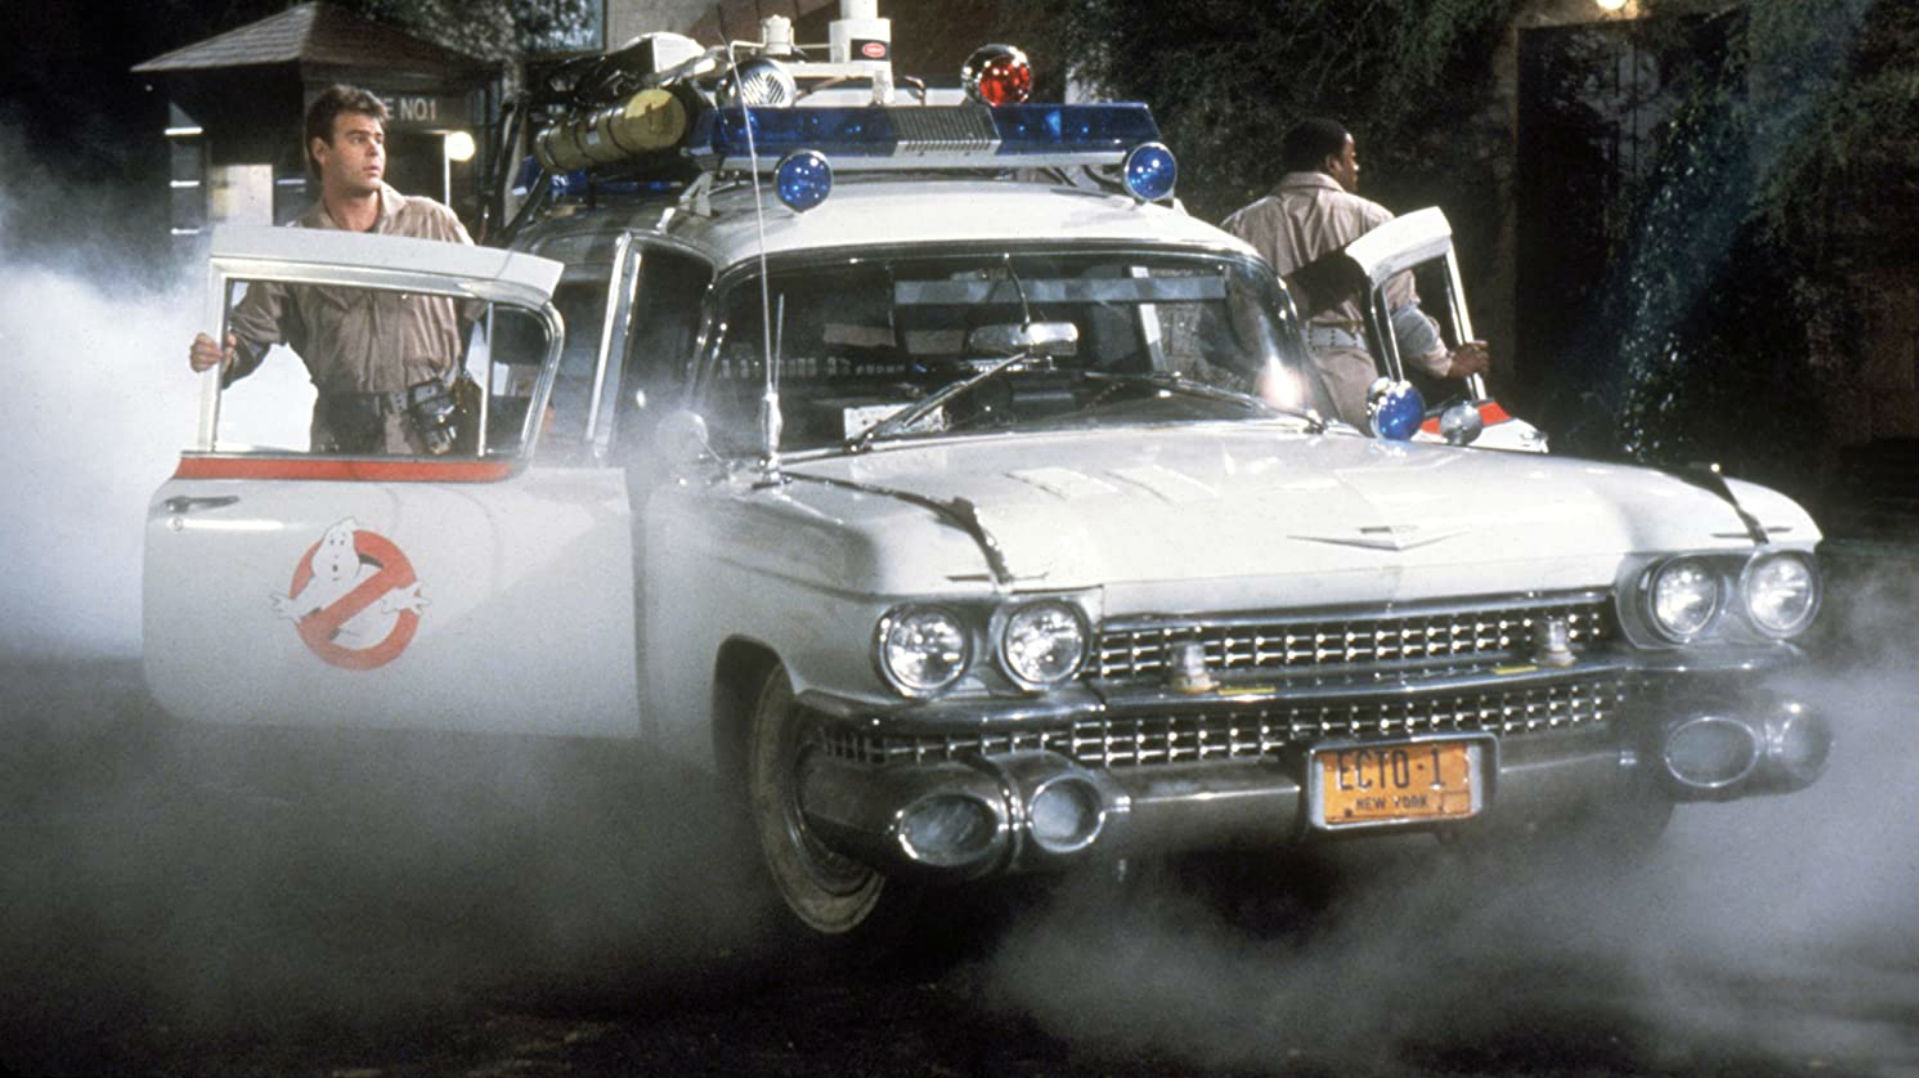 The Ghostbusters Ecto-1 Featurette Celebrates a Pop Culture Icon